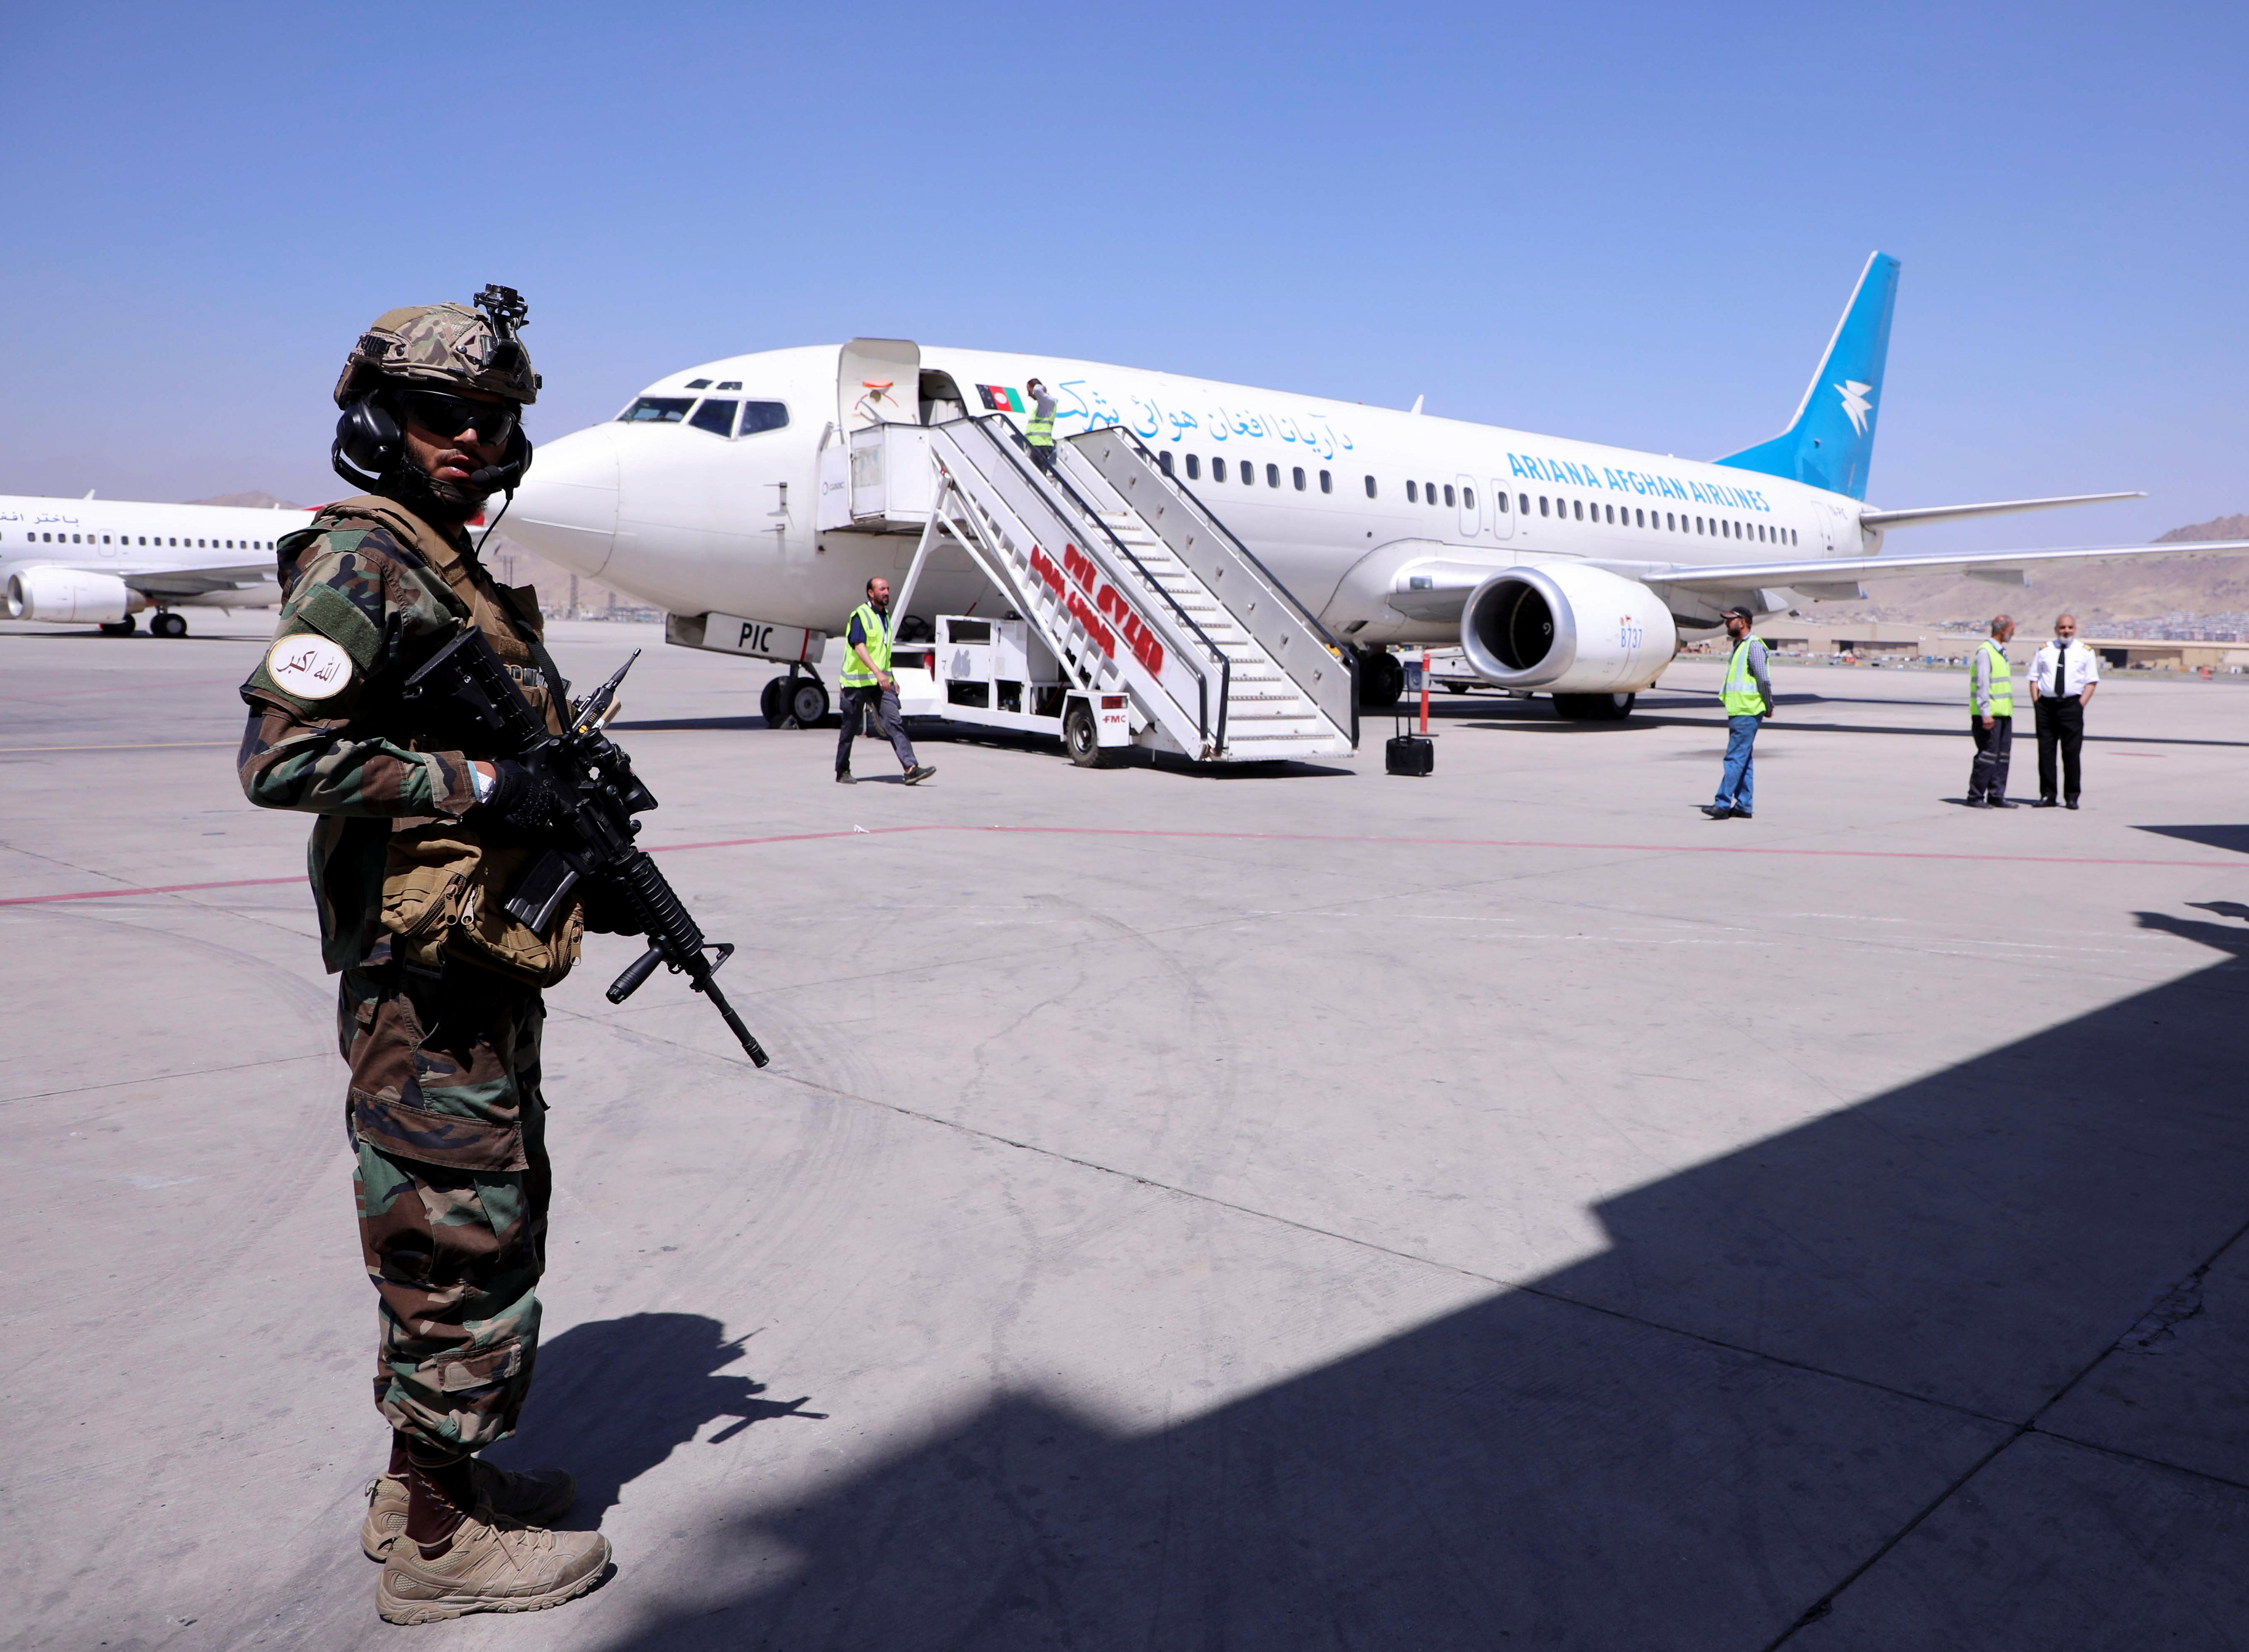 A member of Taliban forces stands guard next to a plane that has arrived from Kandahar at Hamid Karzai International Airport in Kabul, Afghanistan September 5, 2021. REUTERS/Stringer